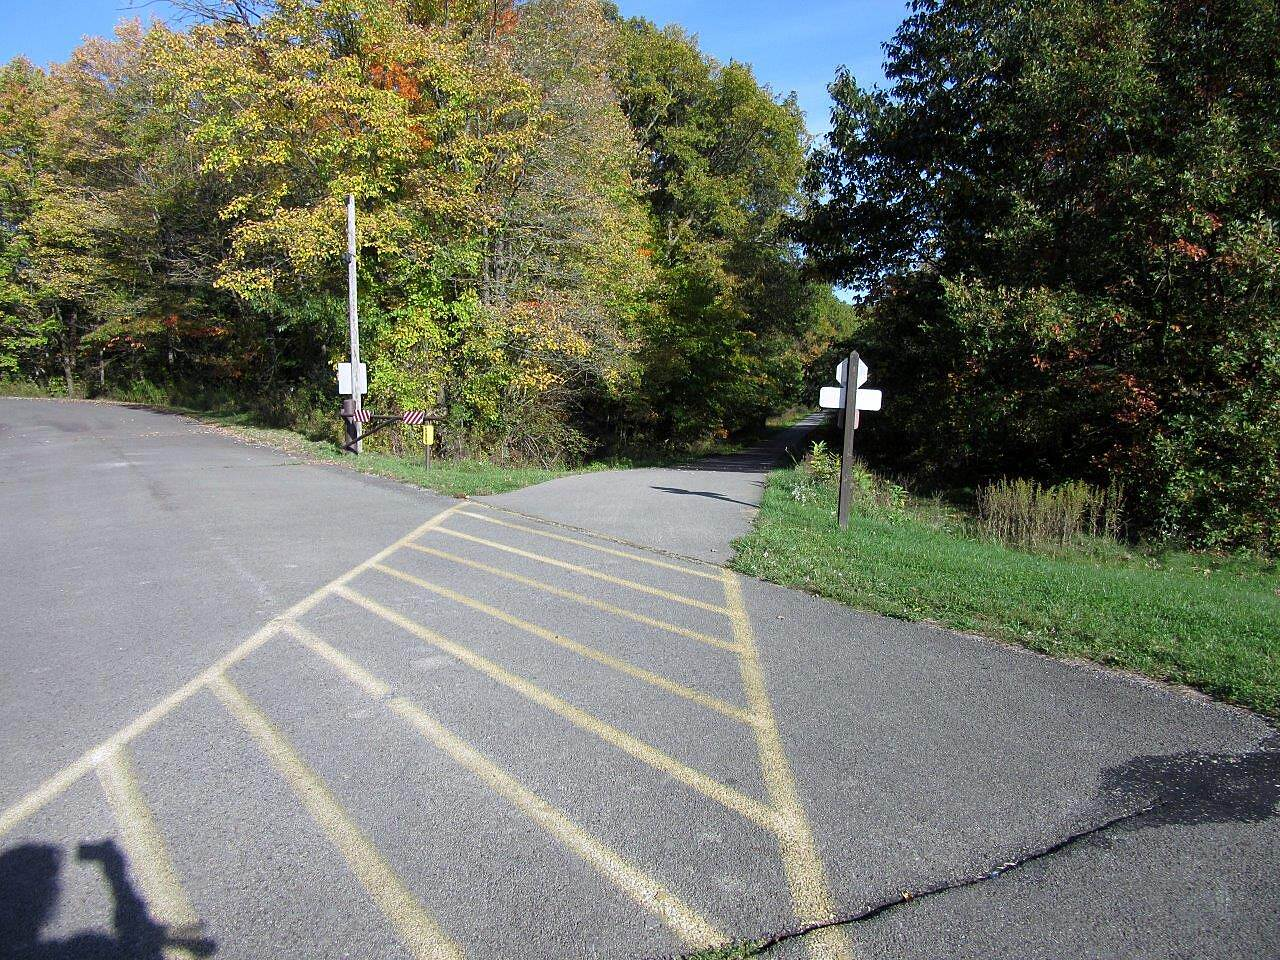 Moraine State Park Bike Trail Trail The trail crosses a few in park roads and parking areas